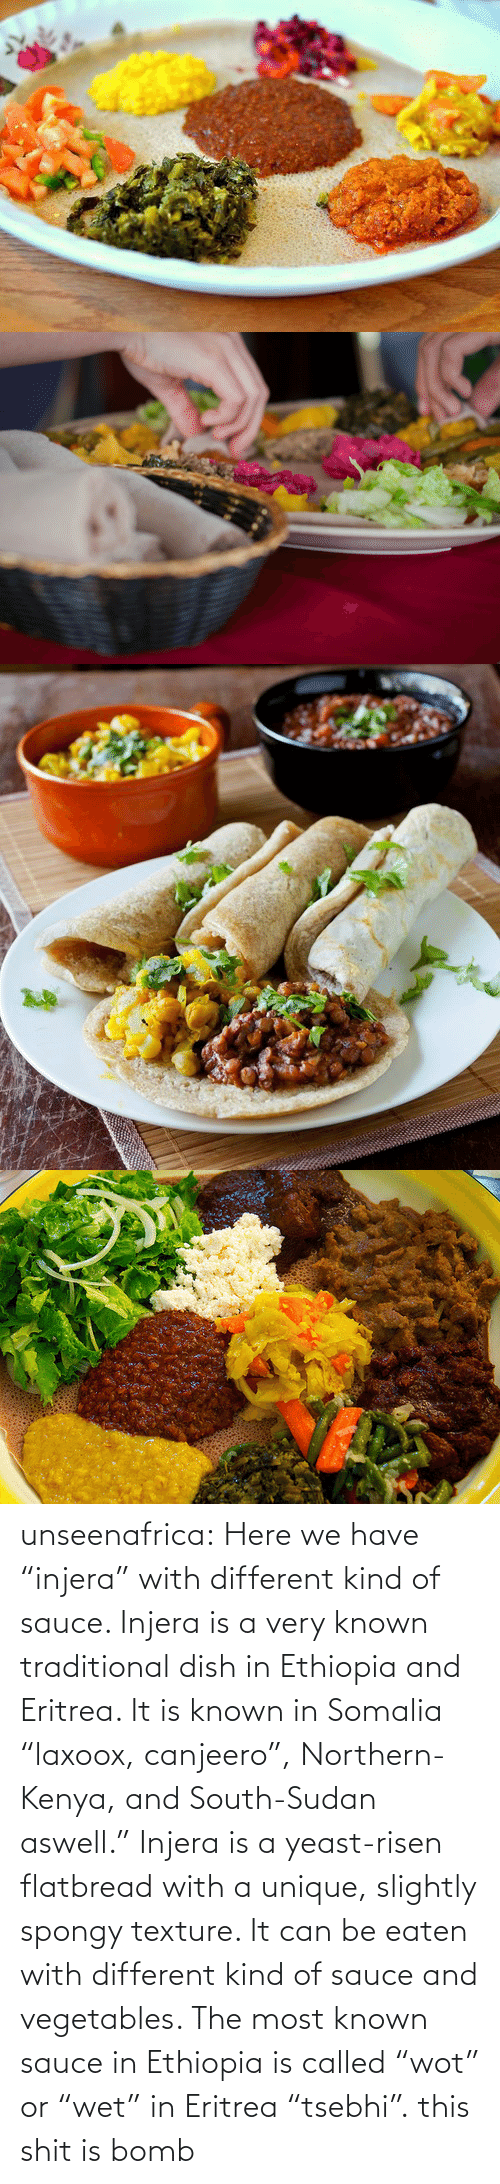 """it is known: unseenafrica:  Here we have """"injera"""" with different kind of sauce. Injera is a very known traditional dish in Ethiopia and Eritrea. It is known in Somalia """"laxoox, canjeero"""", Northern-Kenya, and South-Sudan aswell."""" Injera is a yeast-risen flatbread with a unique, slightly spongy texture. It can be eaten with different kind of sauce and vegetables. The most known sauce in Ethiopia is called """"wot"""" or """"wet"""" in Eritrea """"tsebhi"""".  this shit is bomb"""